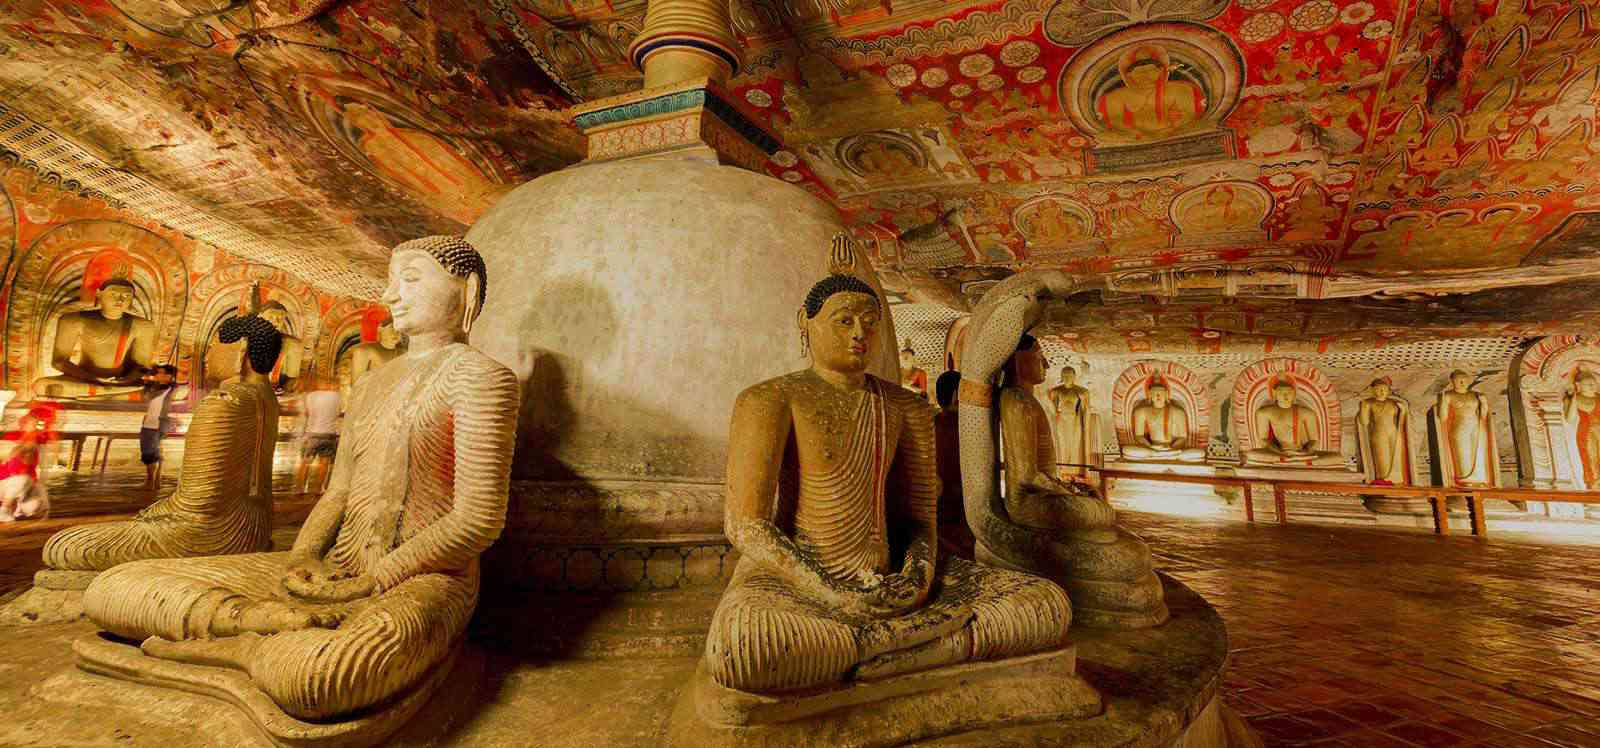 Sri lanka dating culture